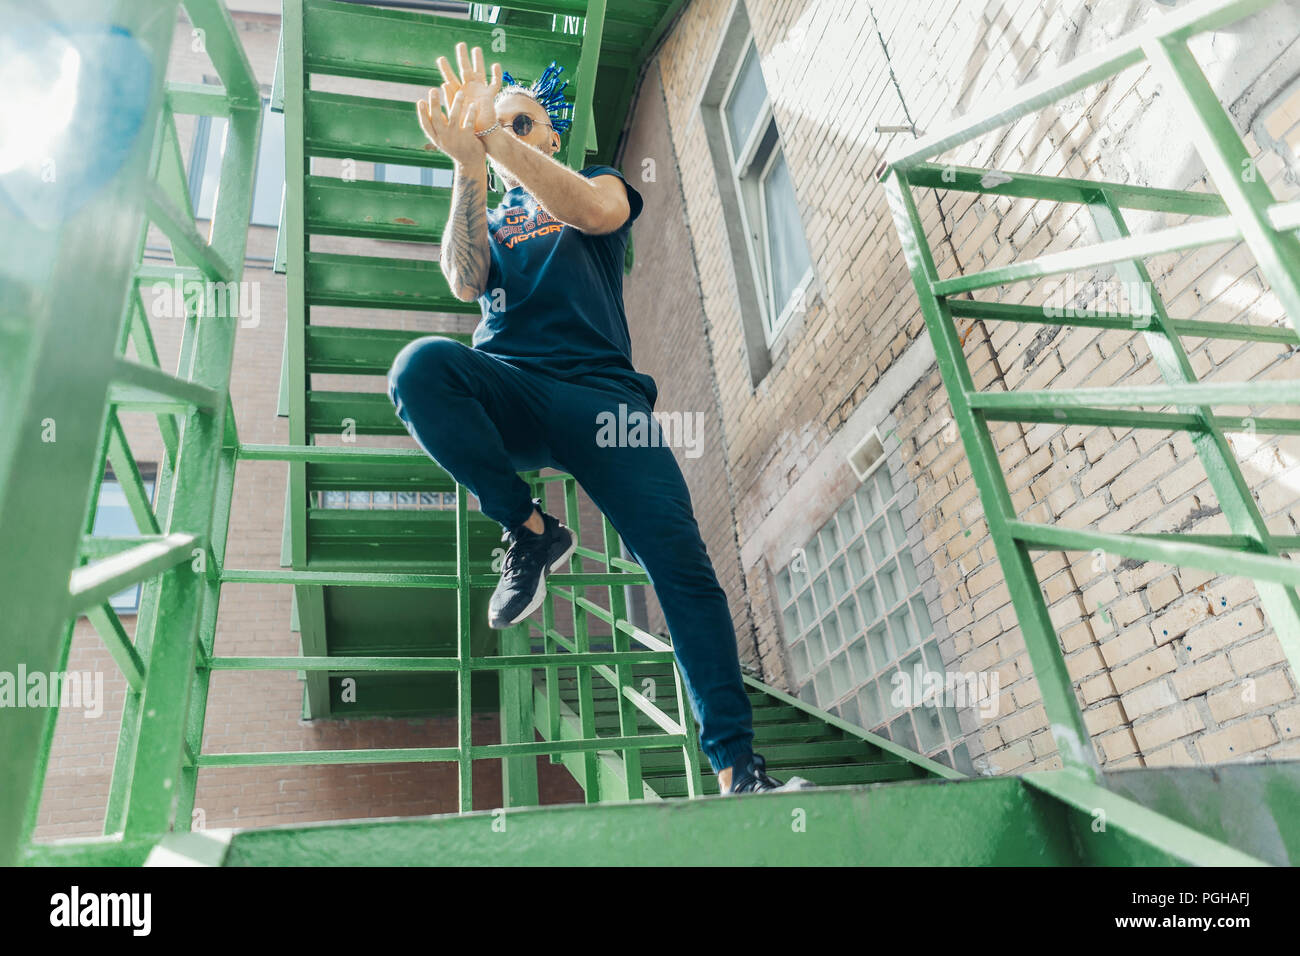 Young man with blue dreadlocks dancing reggaeton on green stairs. Man is on focus and foreground, green stairs is on background and blurred. - Stock Image